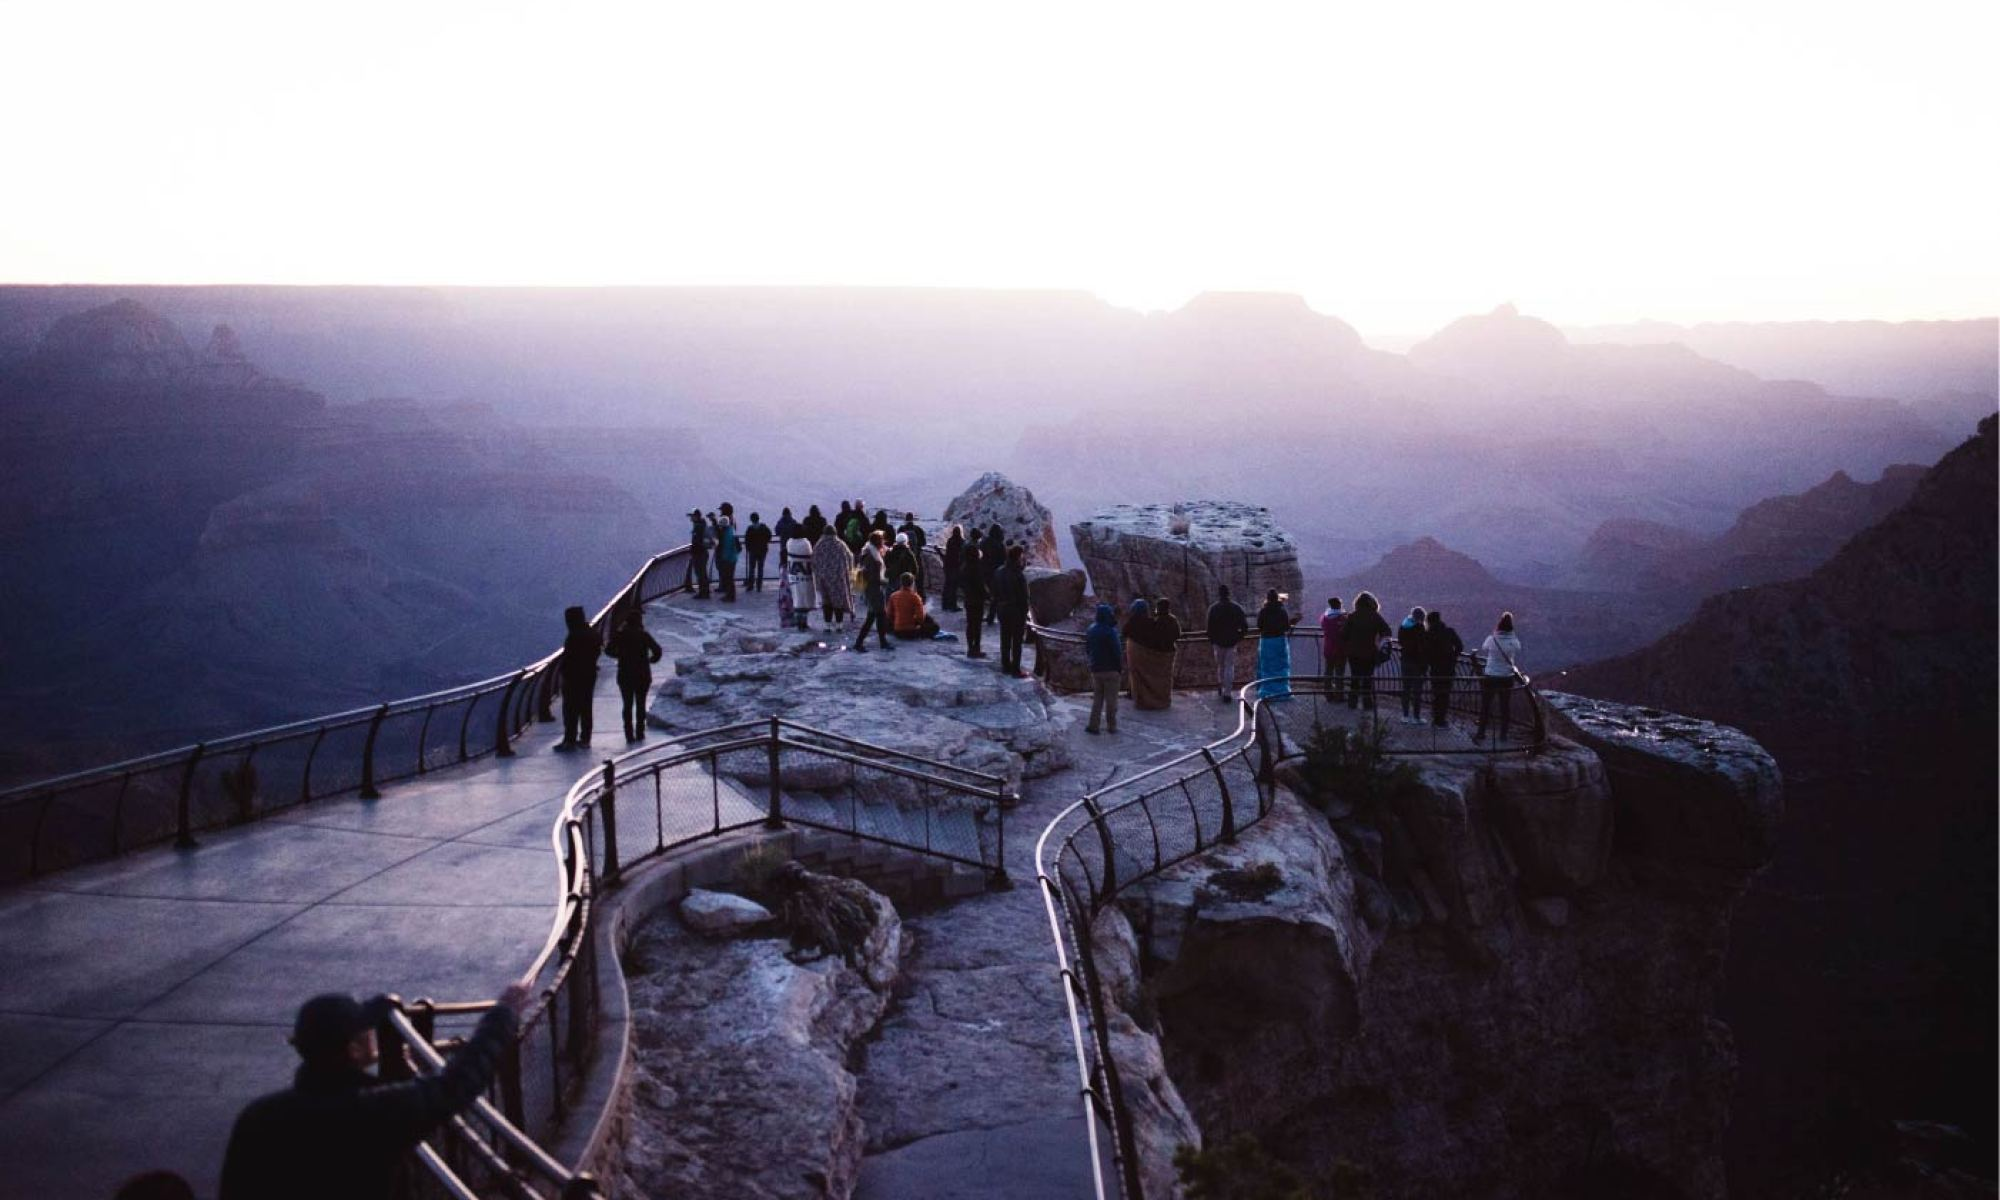 Sunrise at Mather's Point - Grand Canyon South Rim